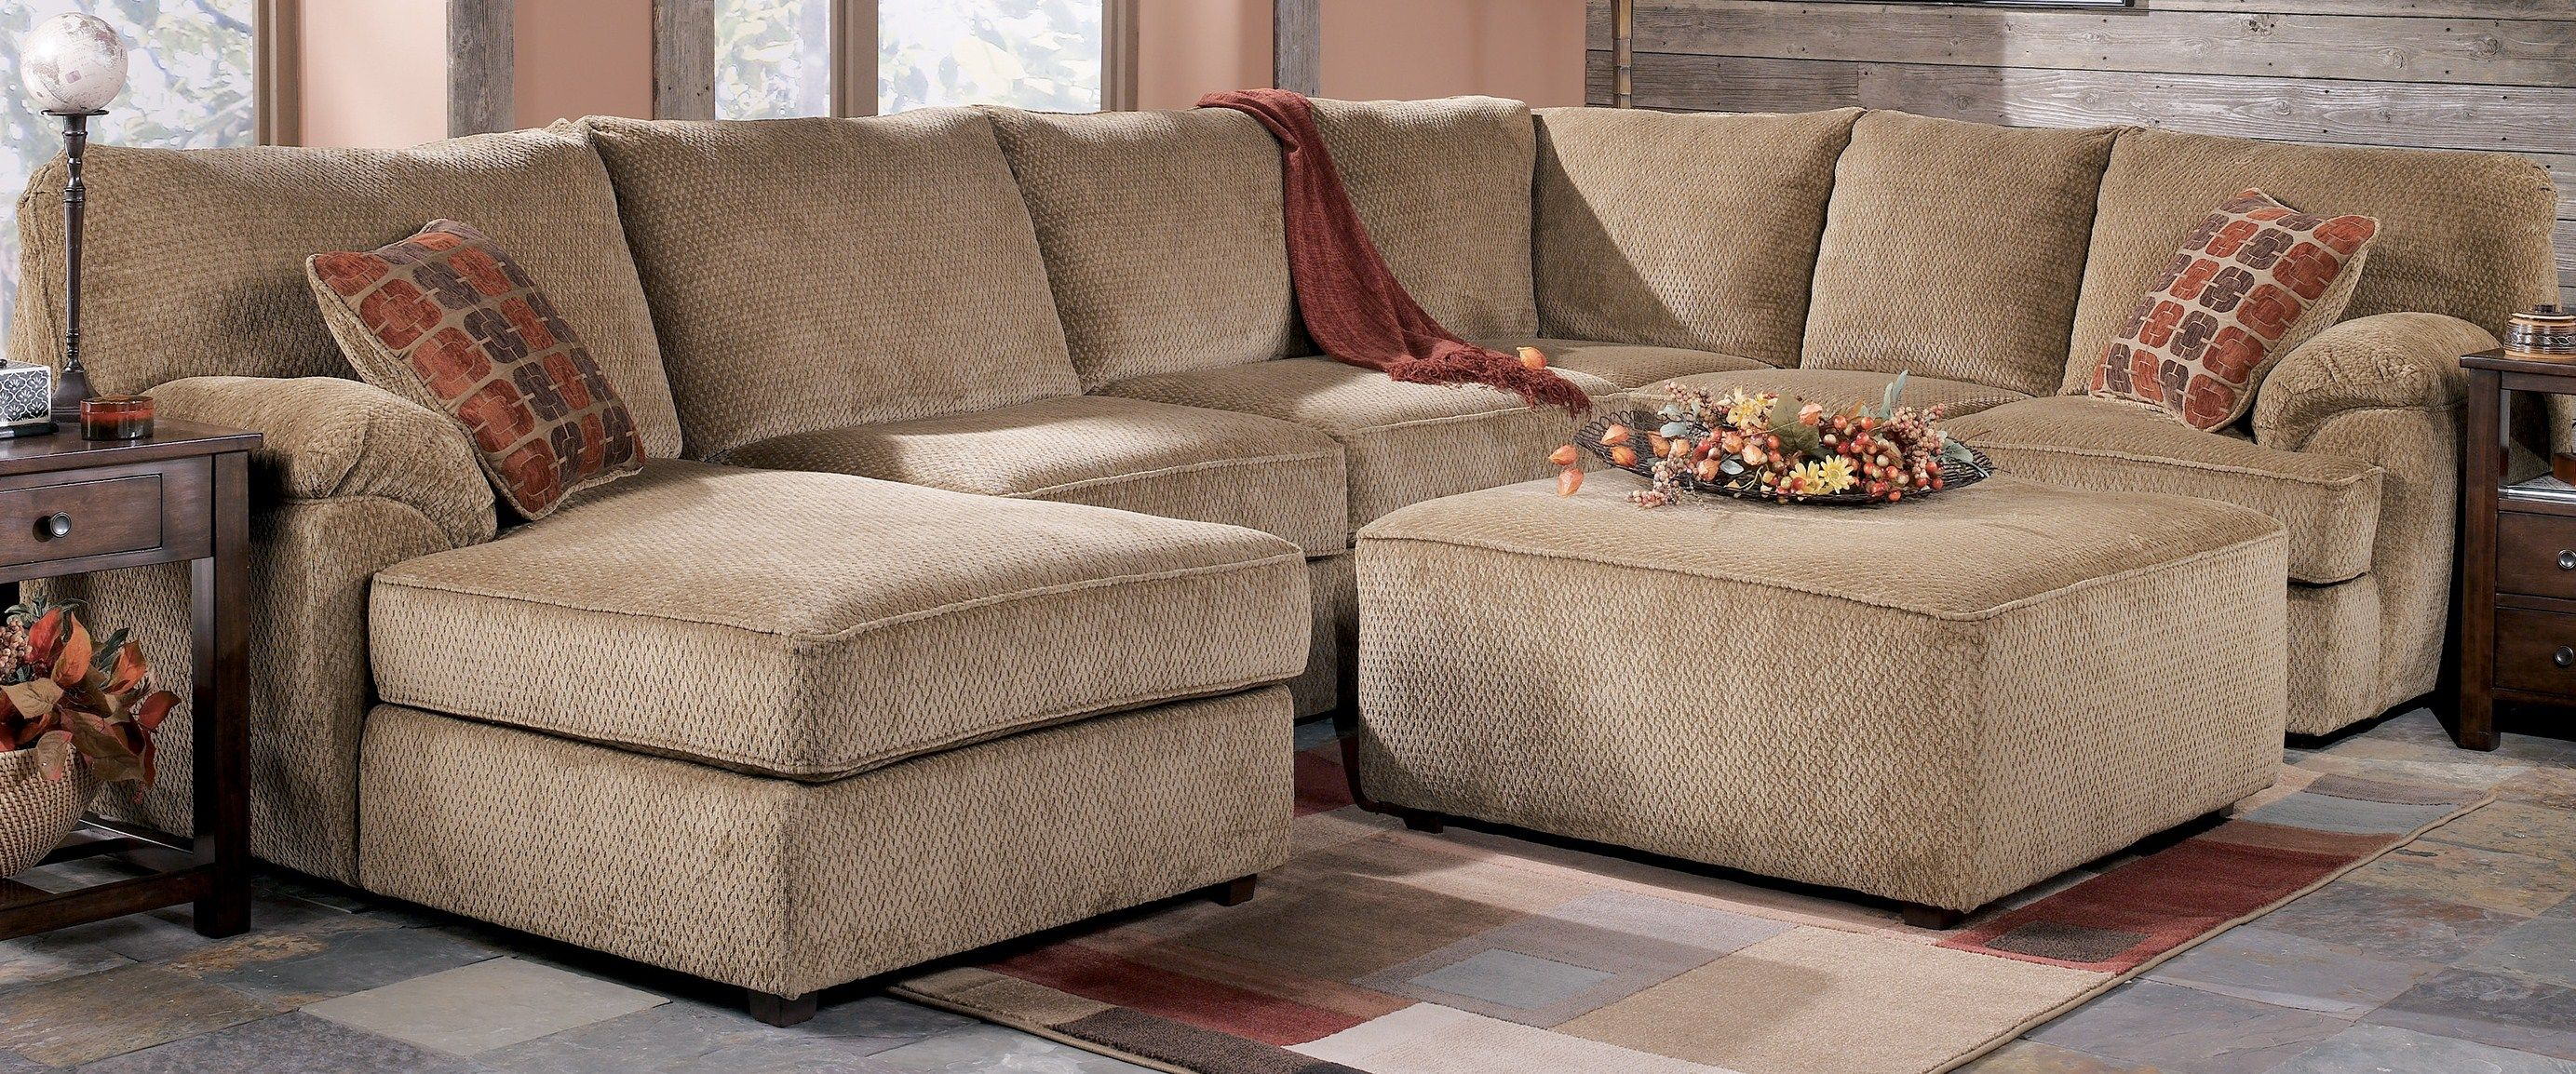 Sectional Sofas Cincinnati Best 15 Of Cincinnati Sectional